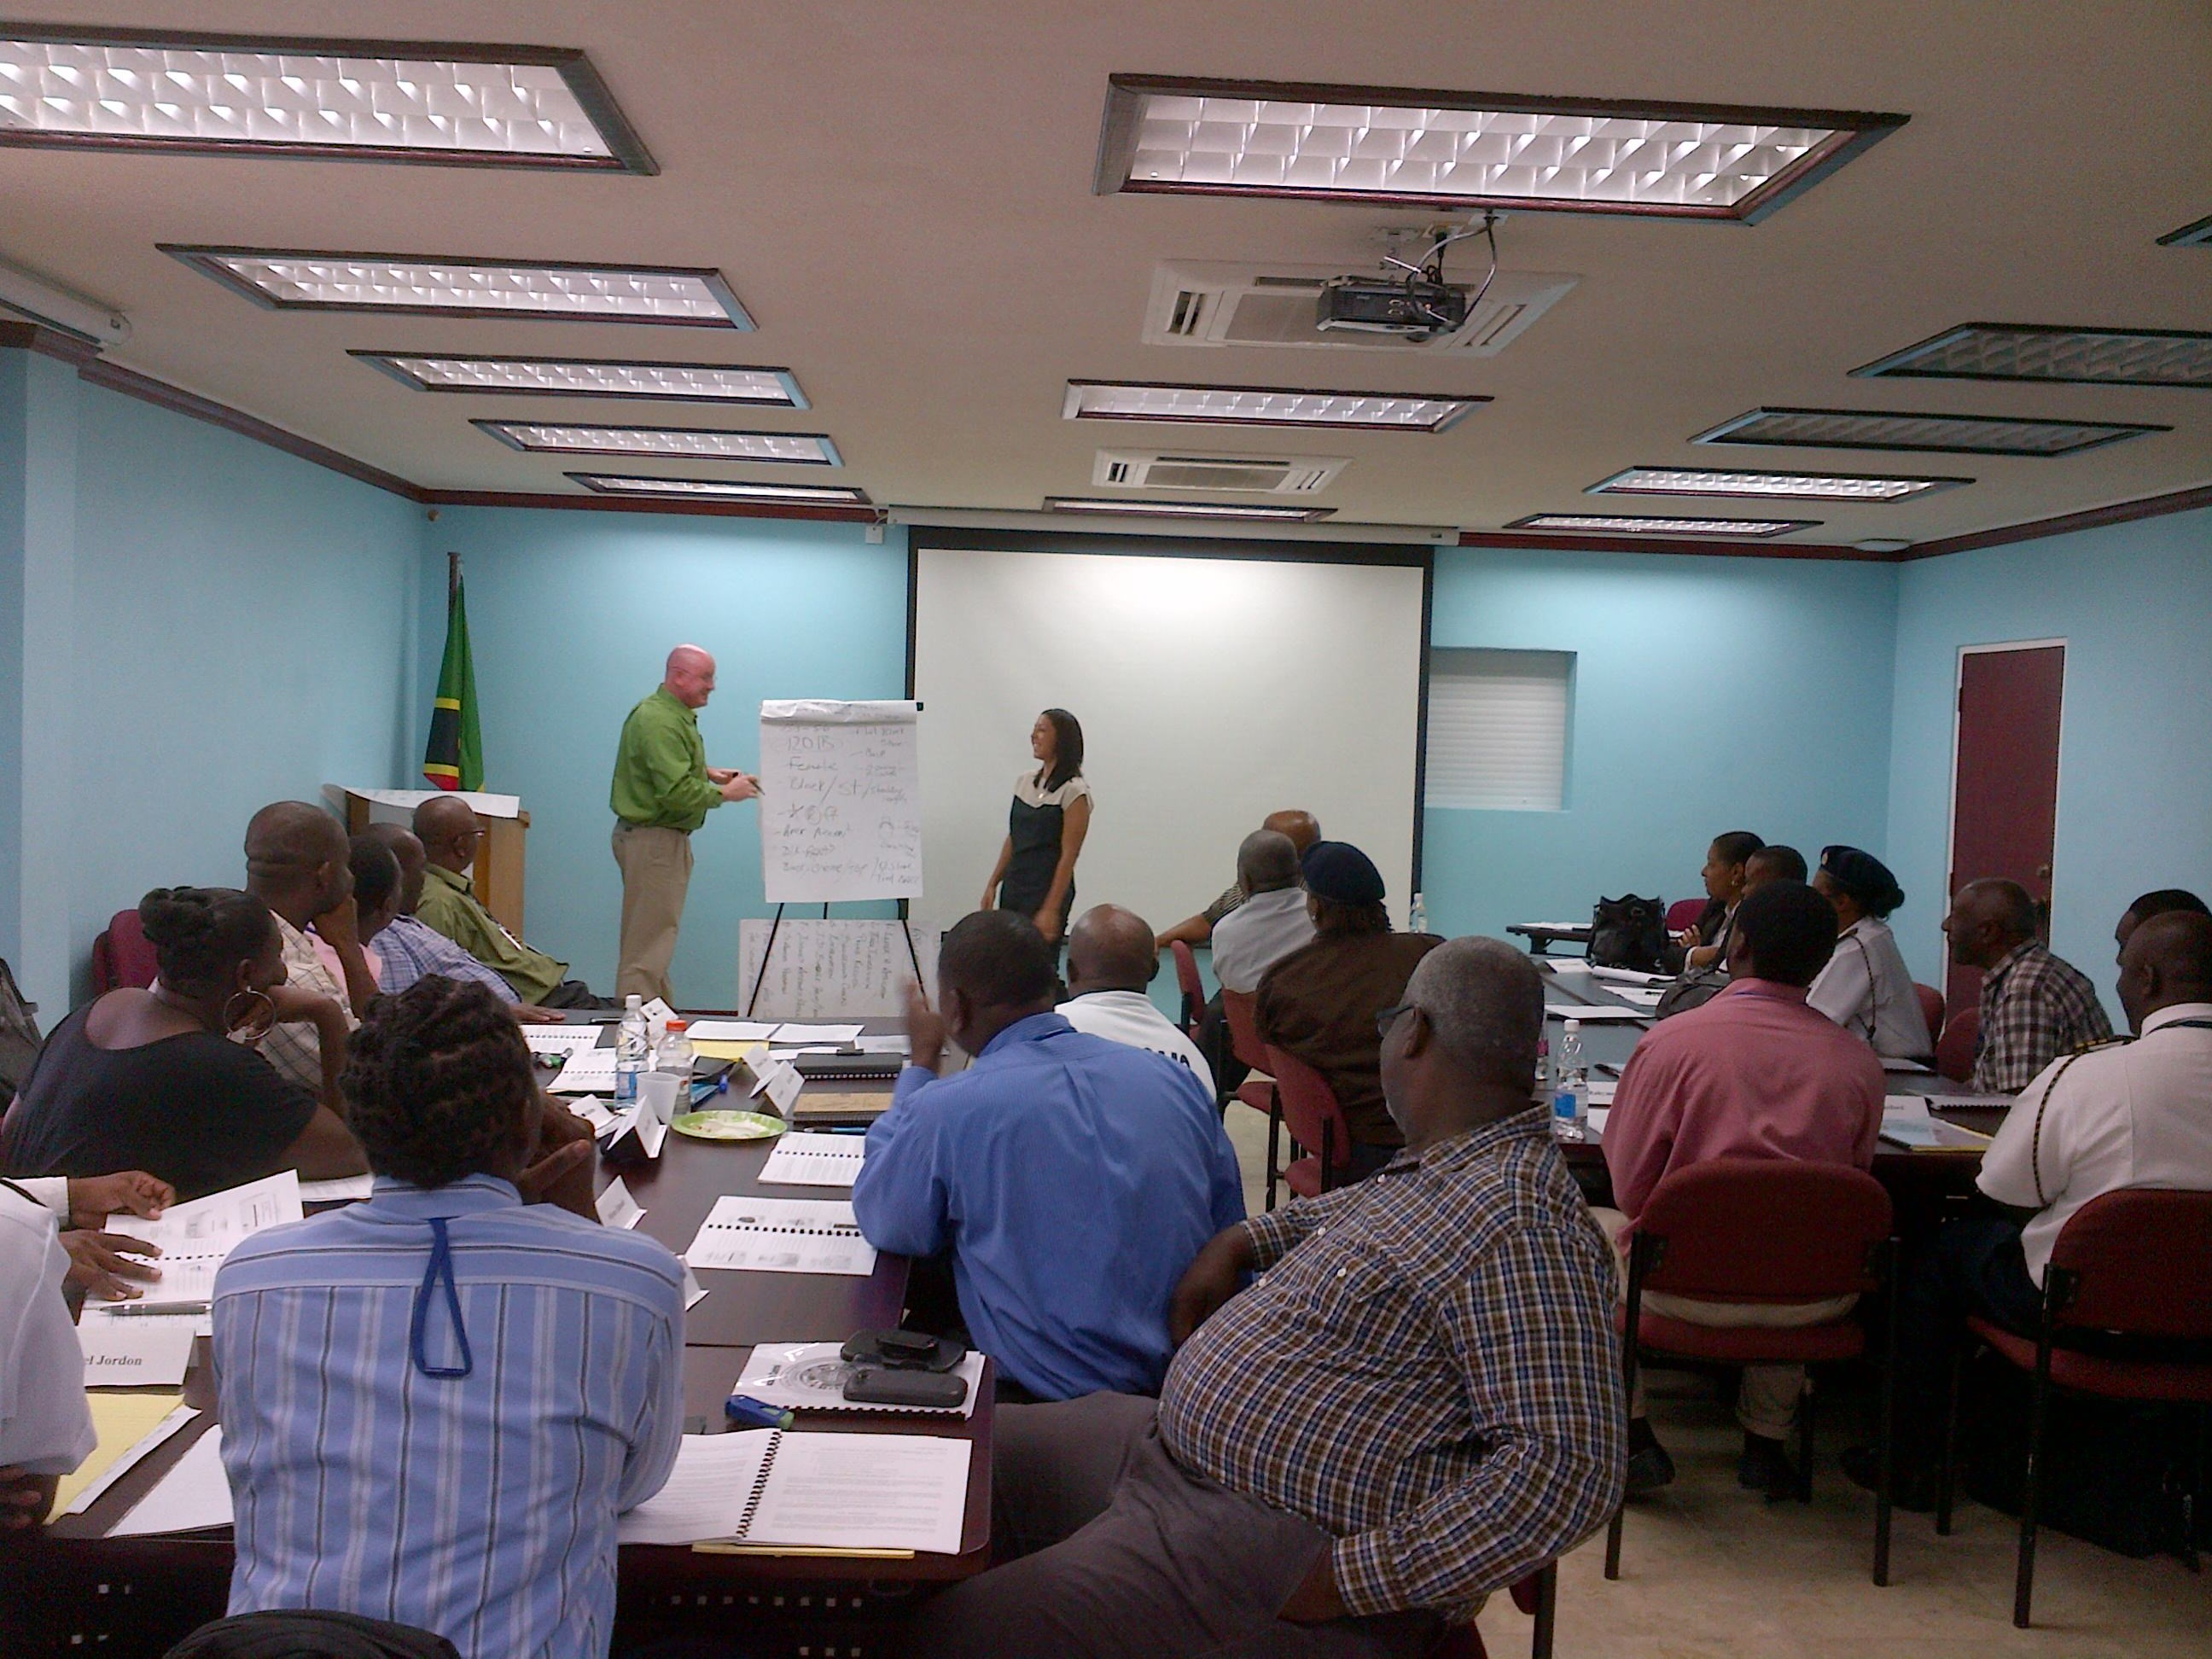 Security Partners support Access Control Course in St. Kitts and Nevis